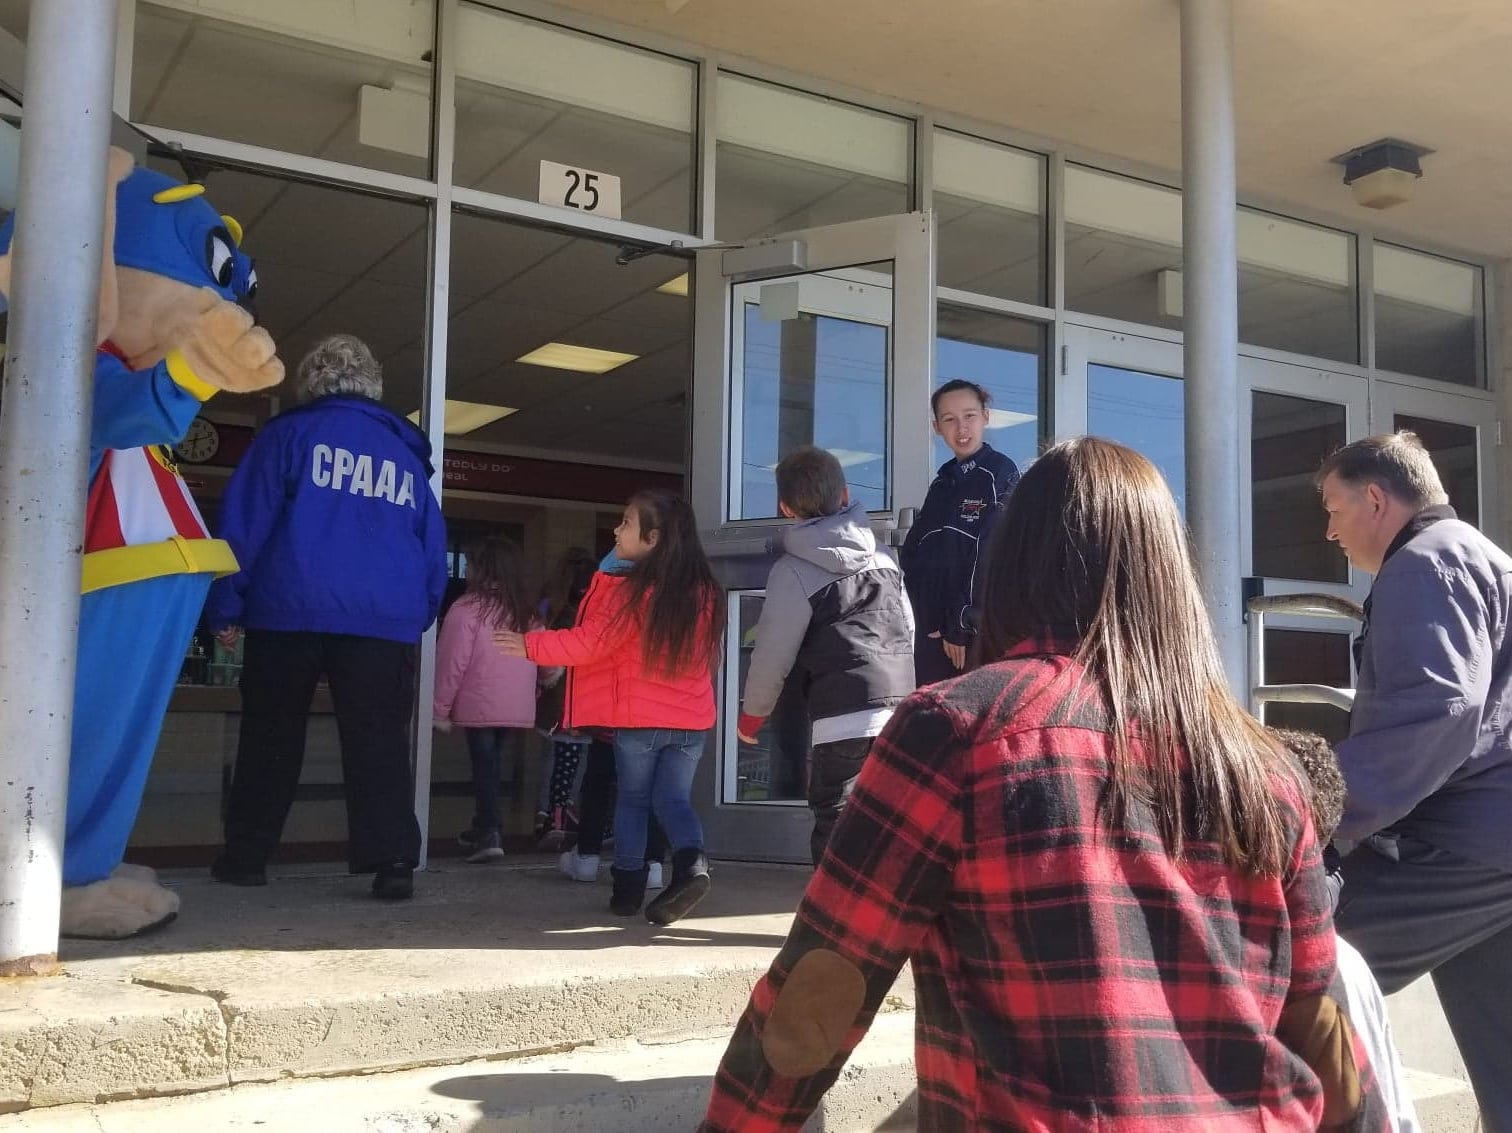 Members of Marion's CPAAA provide the Marion Police Department with extra hands, helping with community outreach like school safety drills.